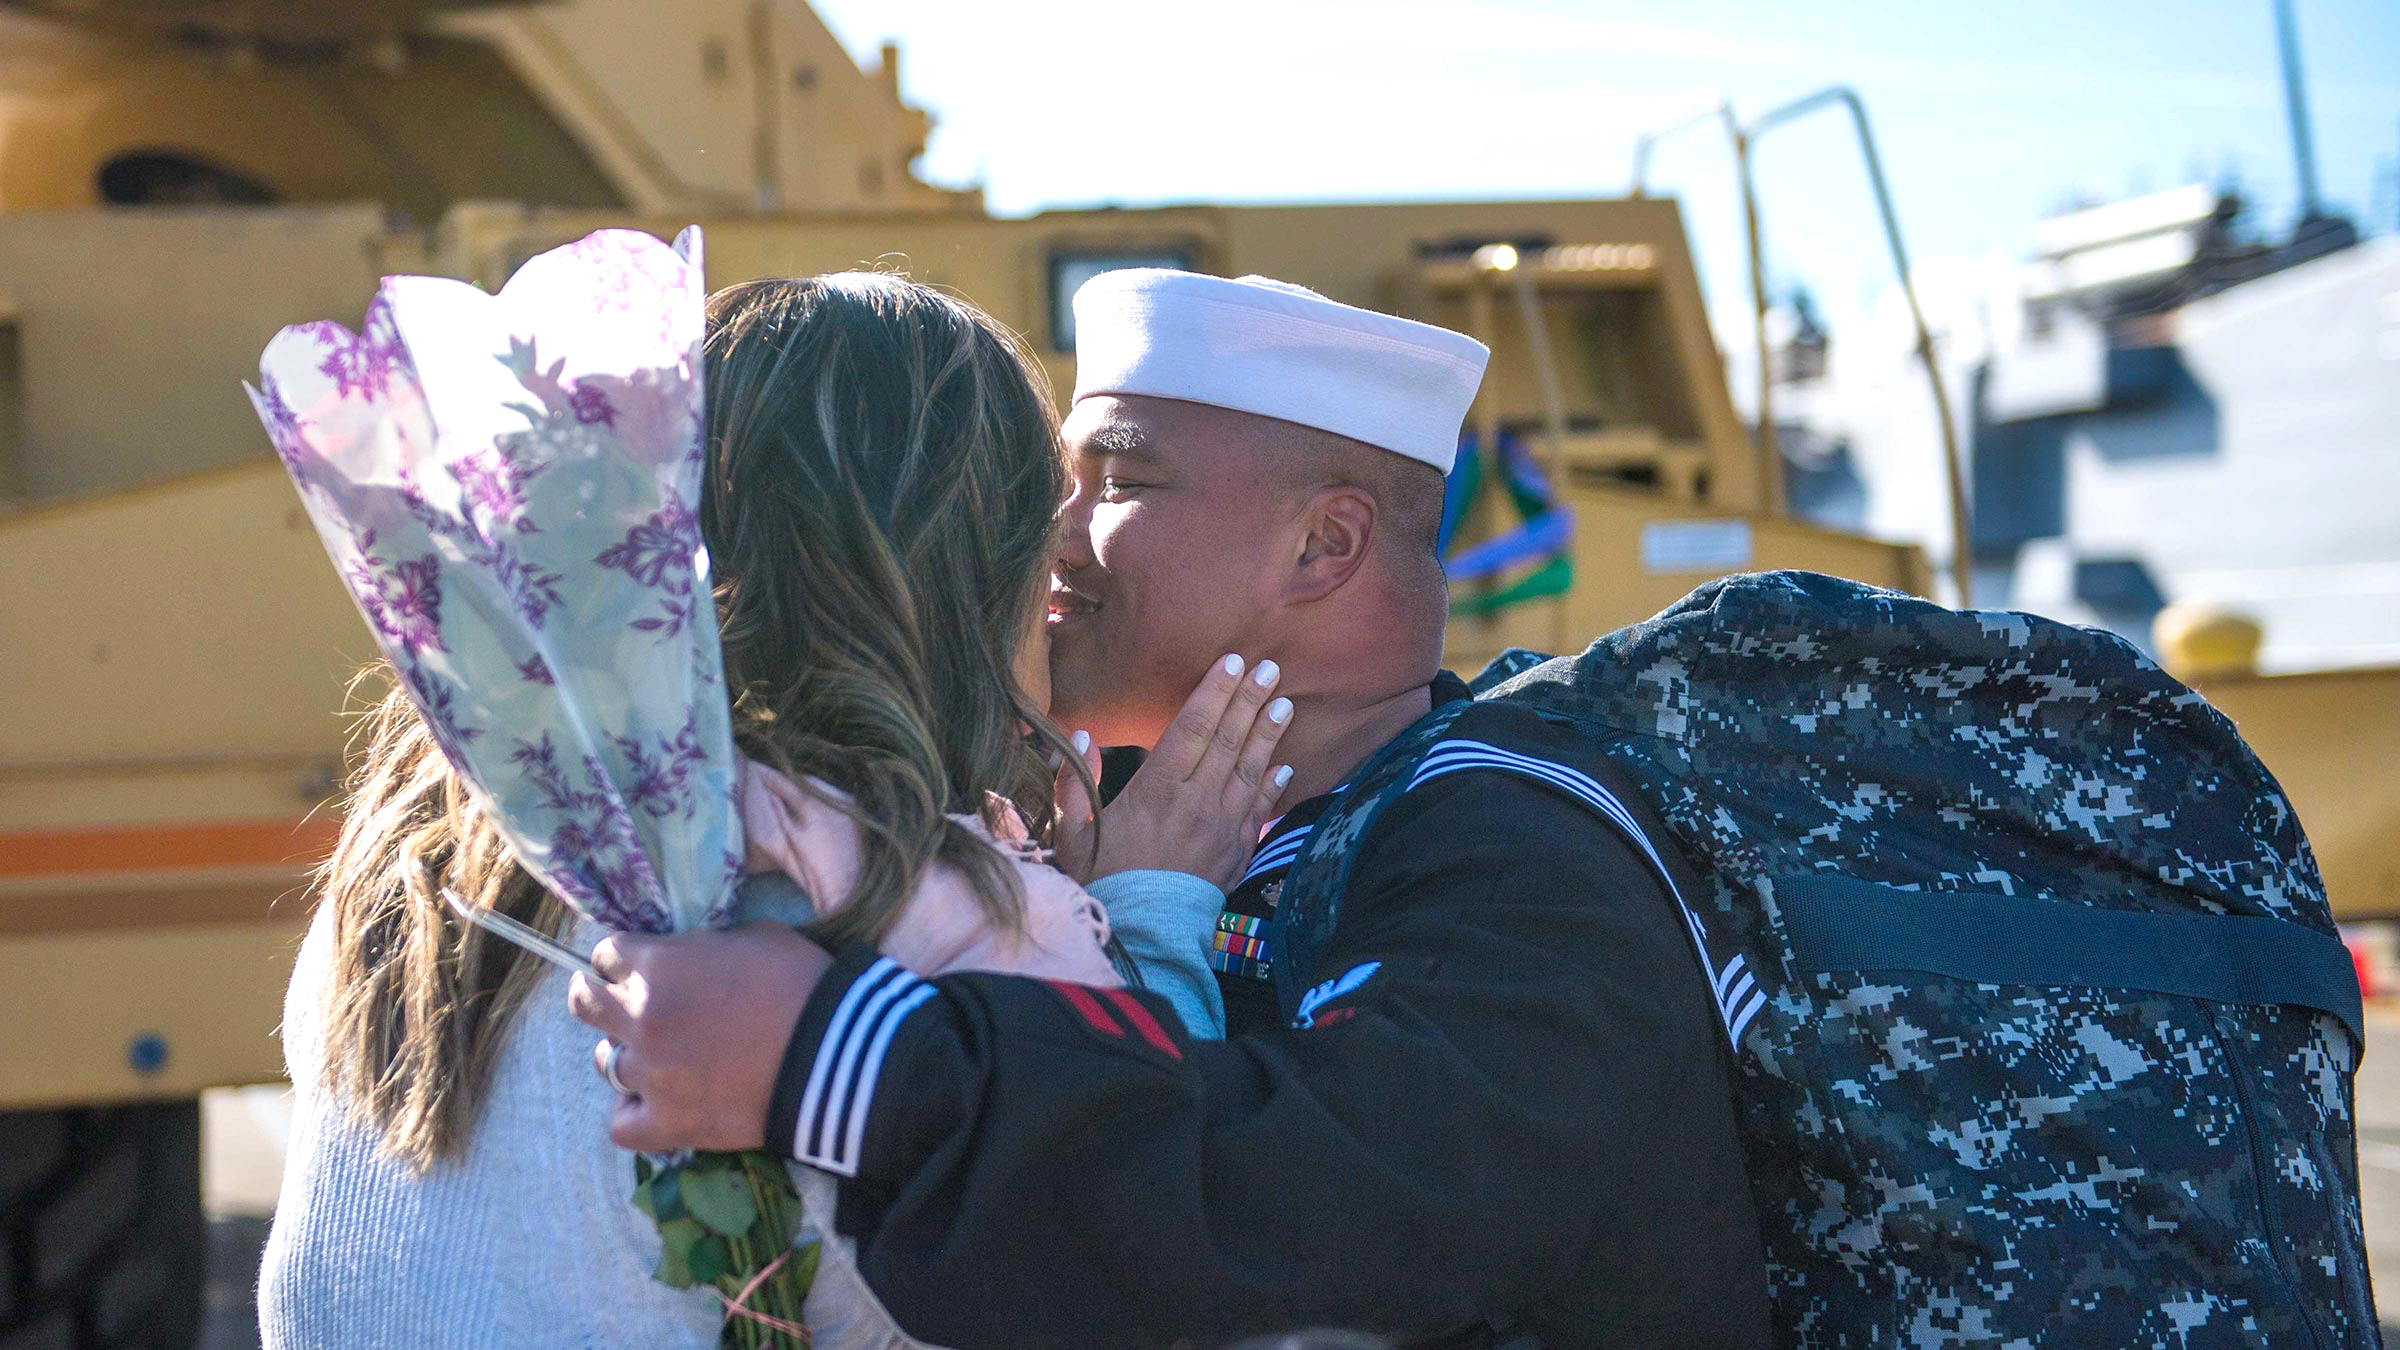 Spouse welcomes returning service member with flowers